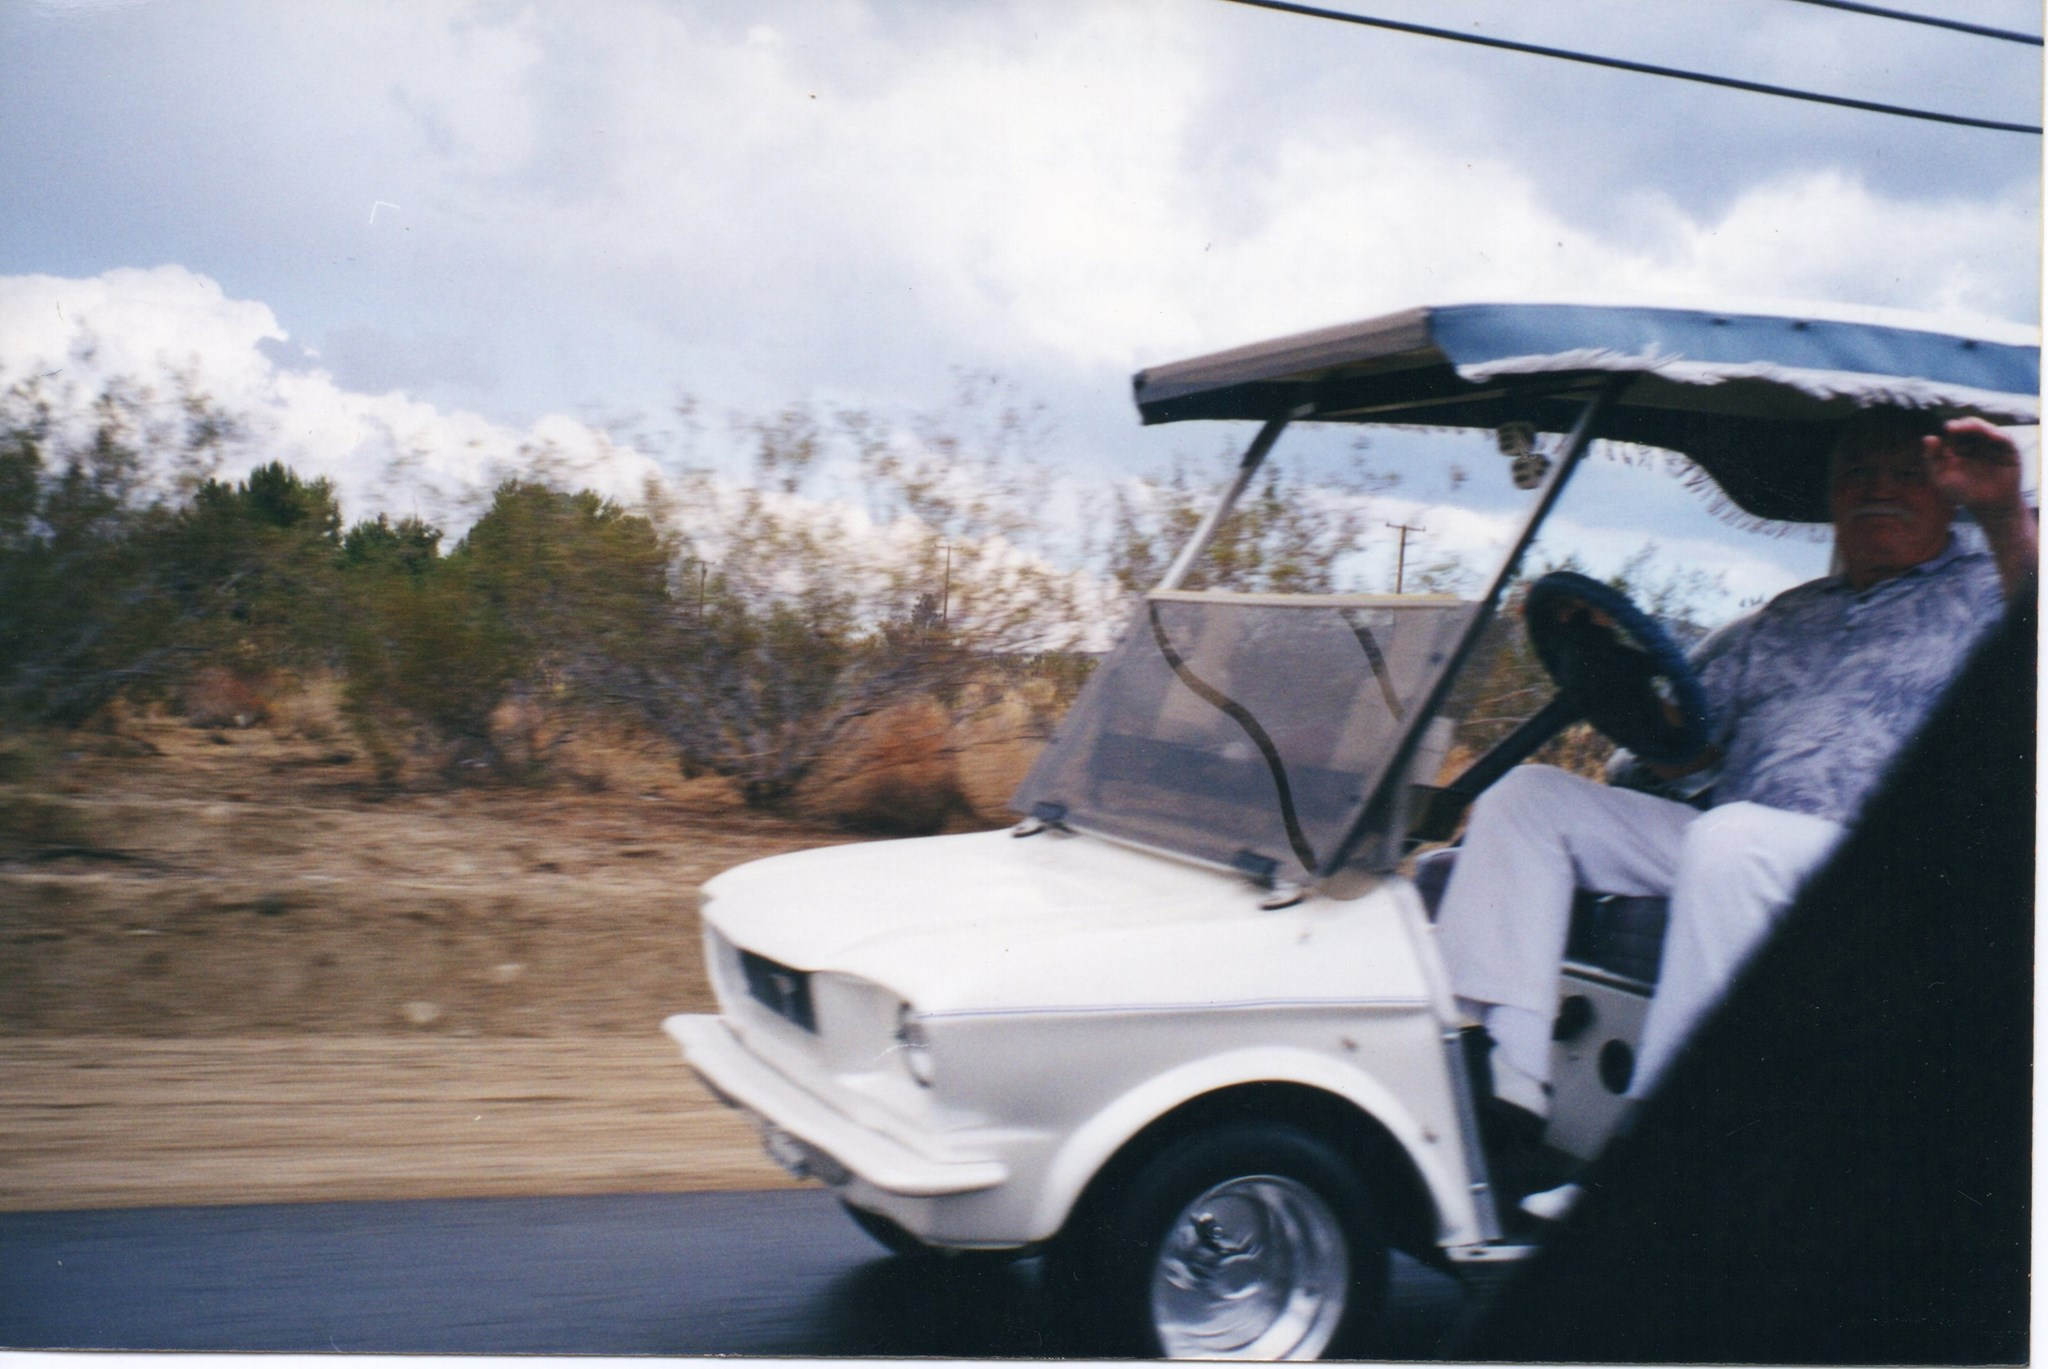 Glen on his custom-made golf cart - Sept. 2001